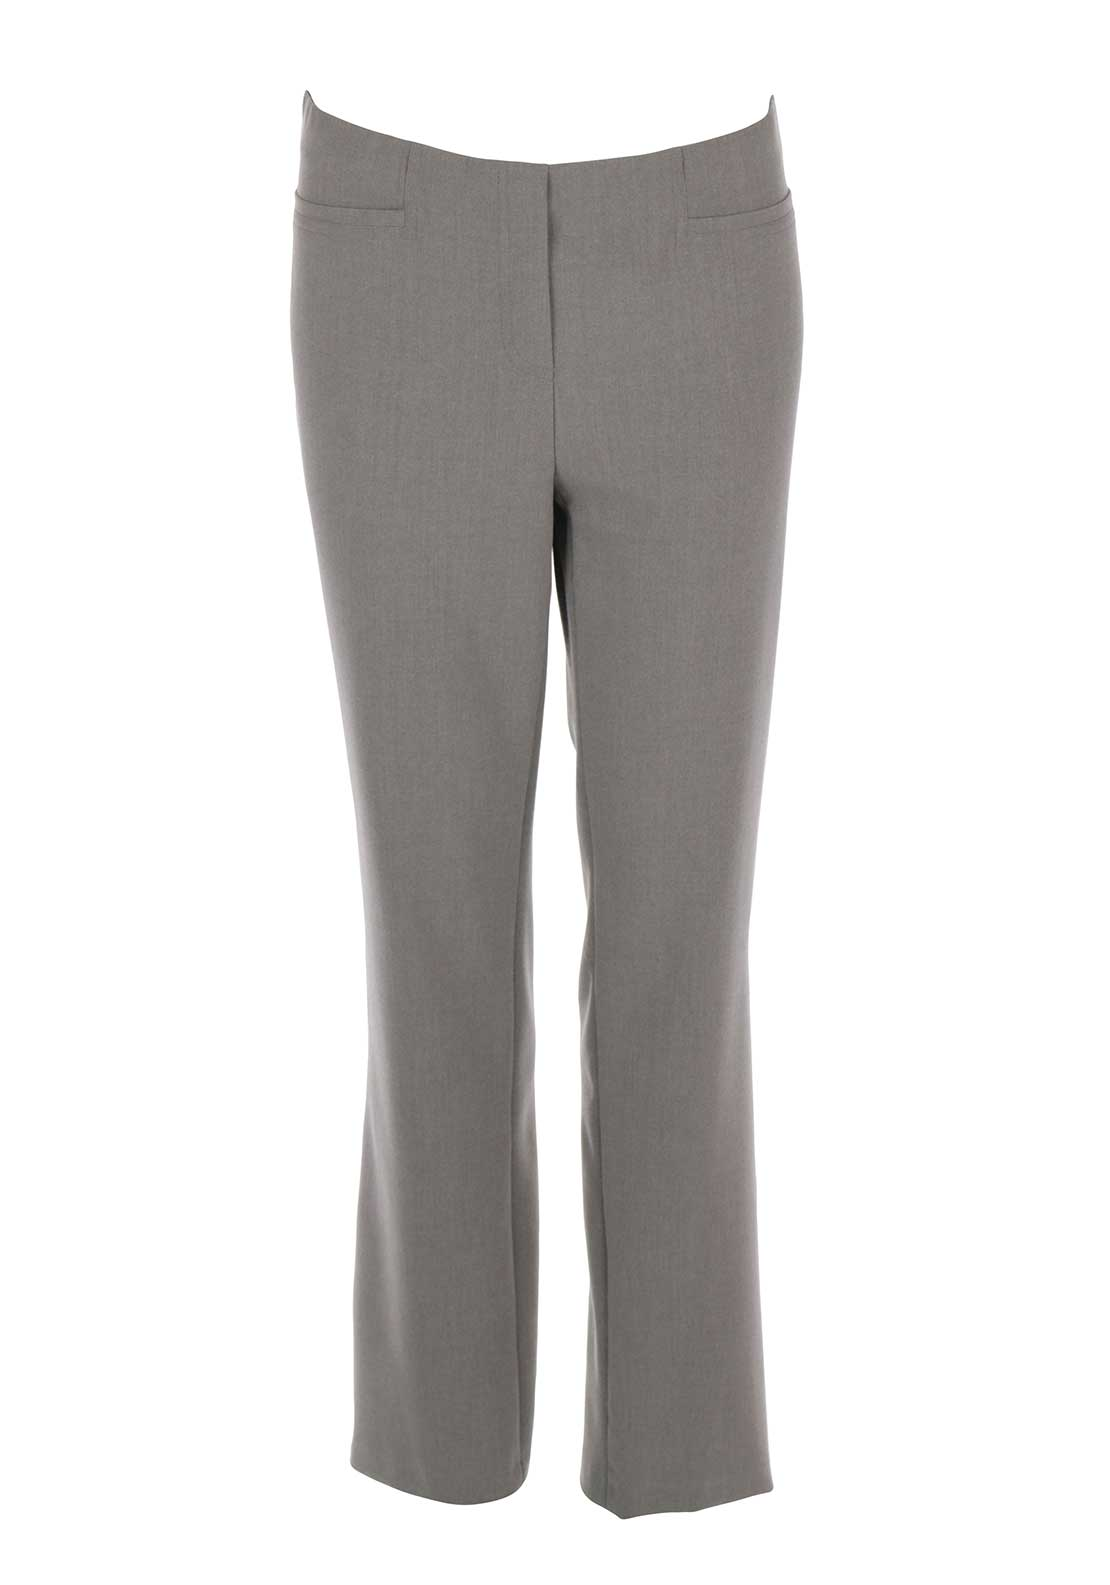 Robell Jacklyn Slim Fit Trousers, Beige